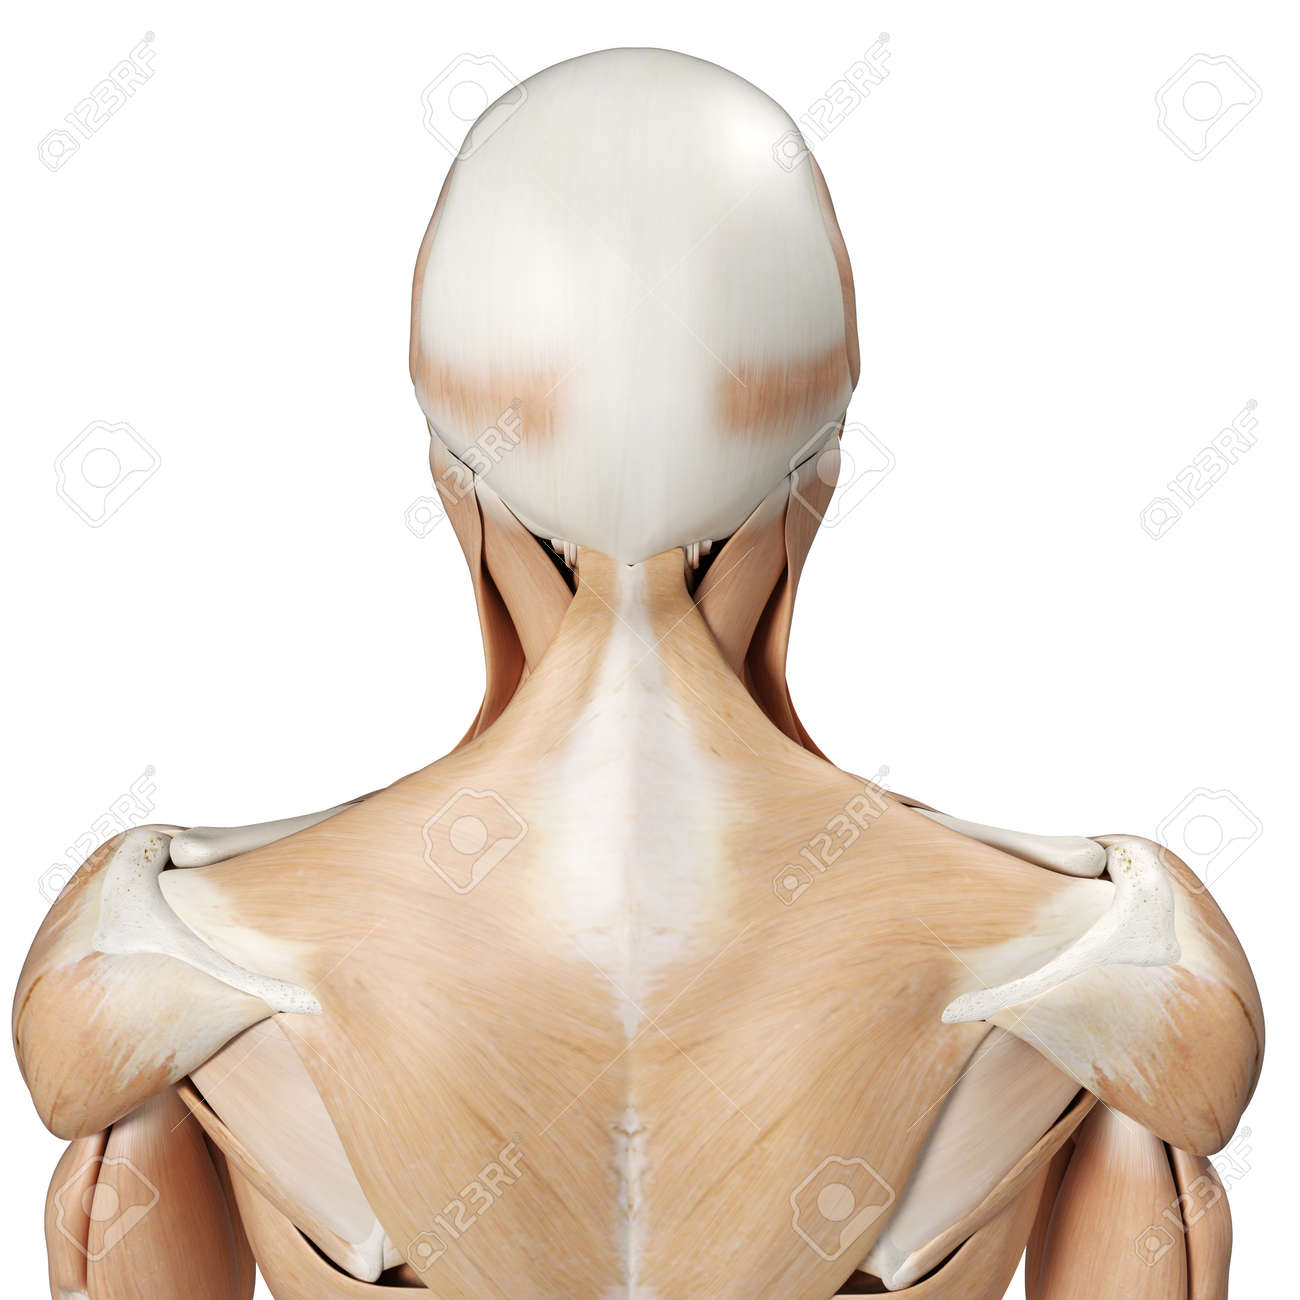 3d Rendered Medically Accurate Illustration Of The Upper Back